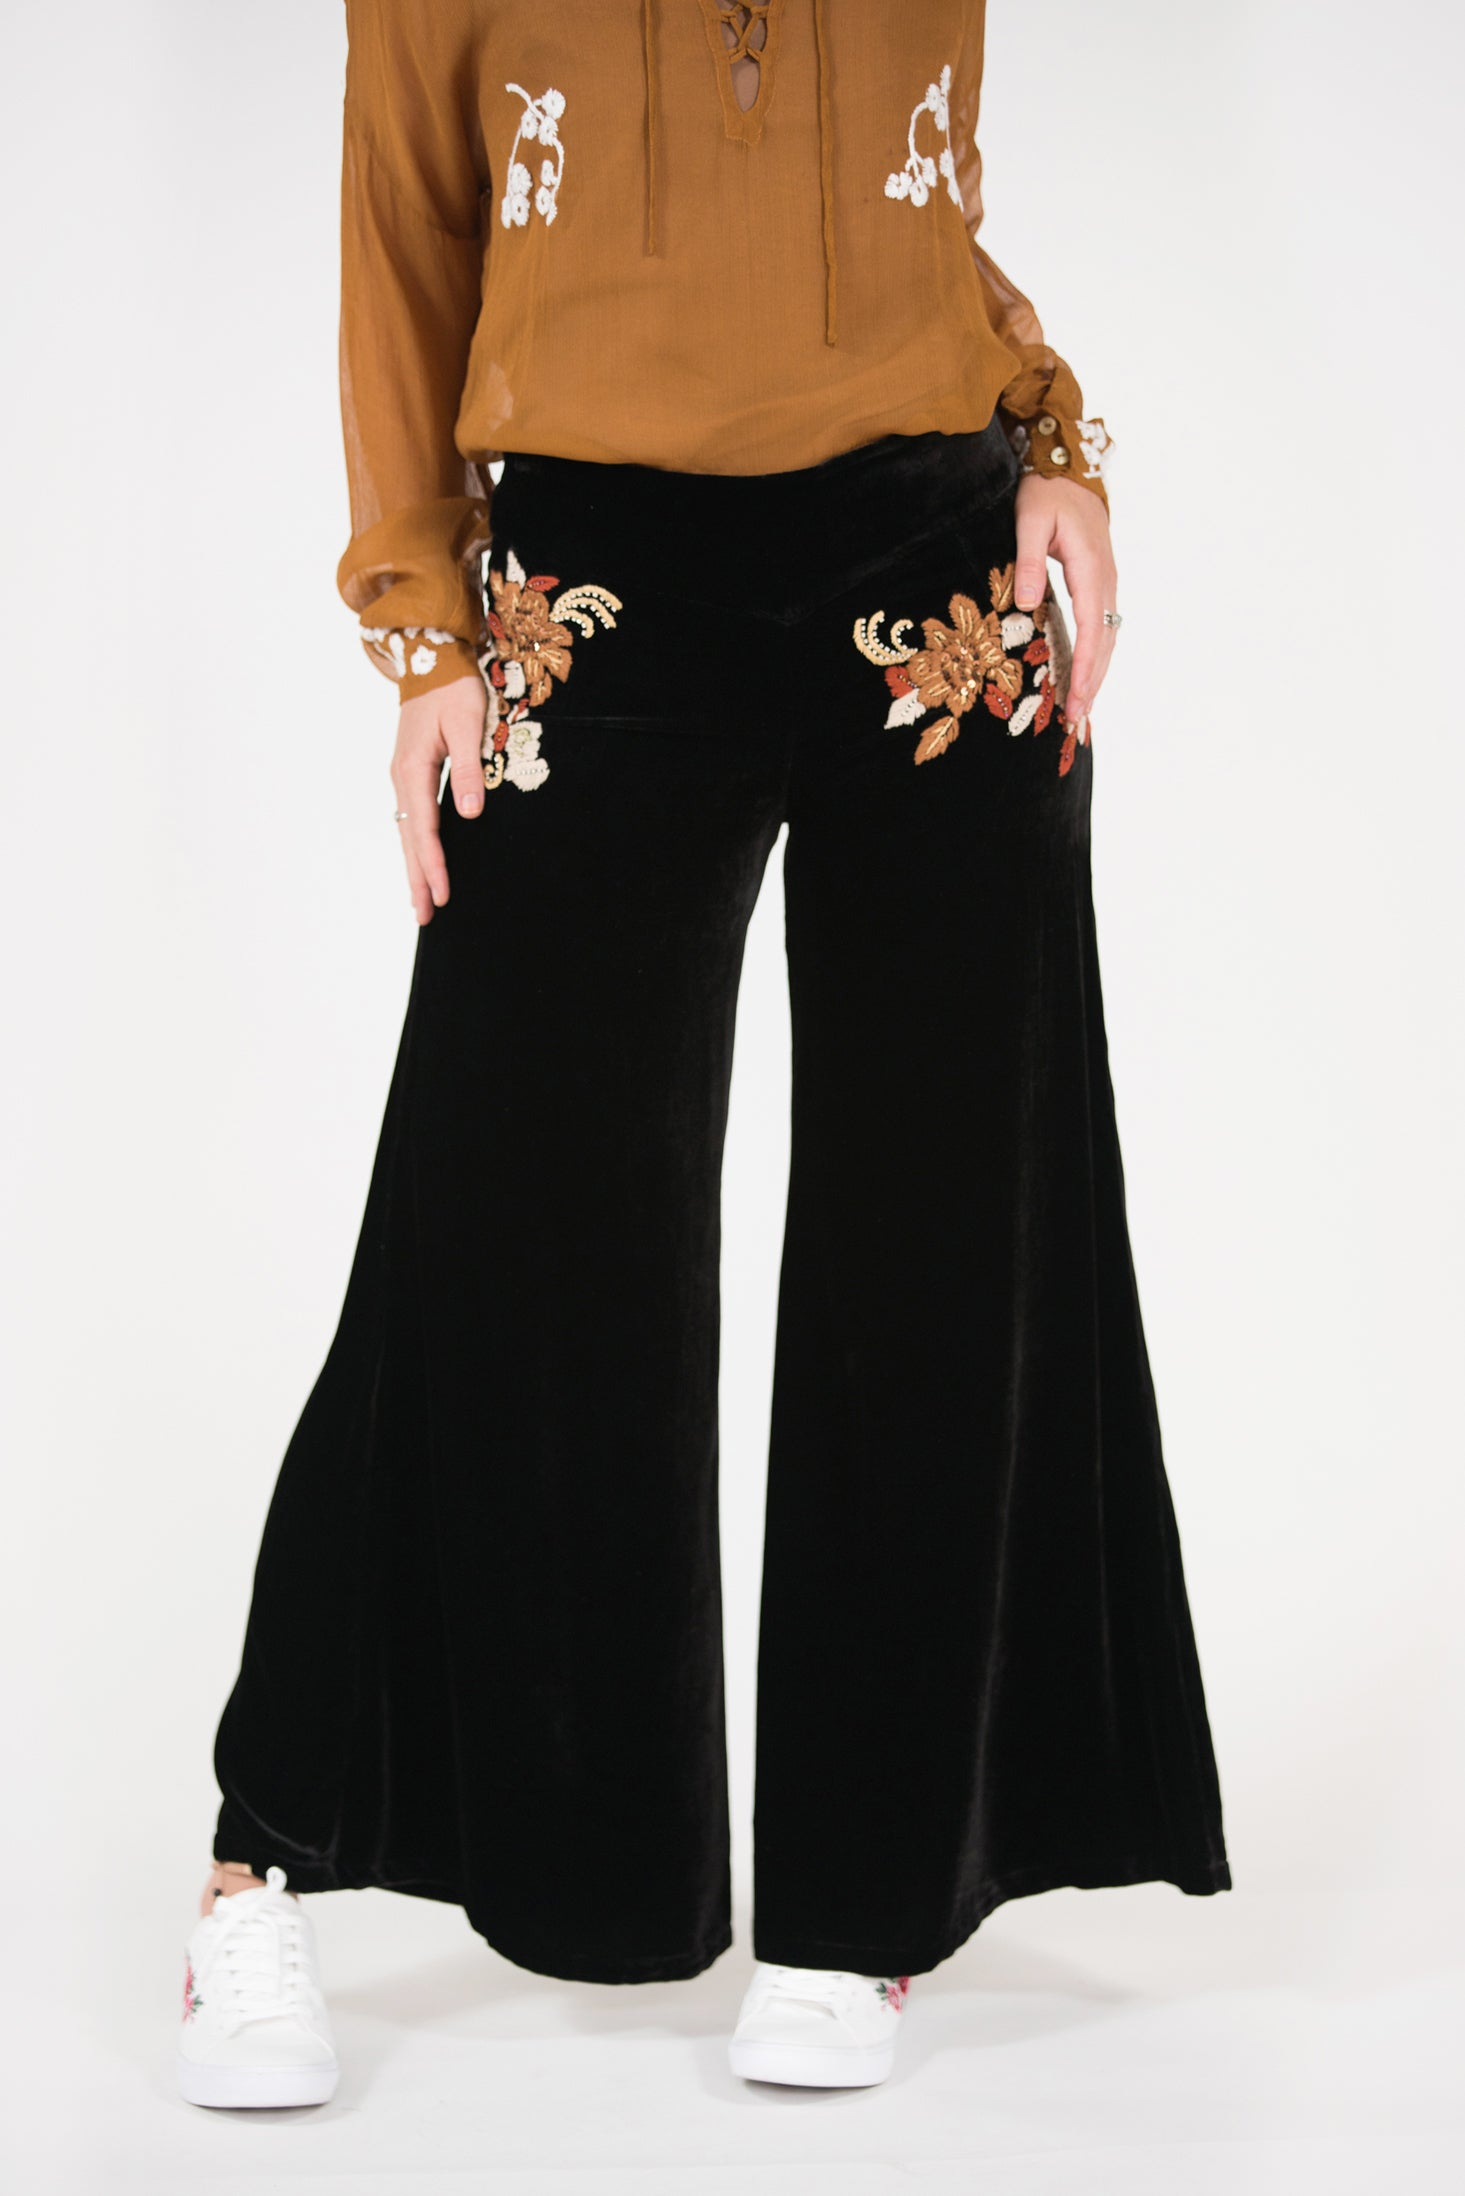 velvet embroidered beaded wide leg fixed waist pant